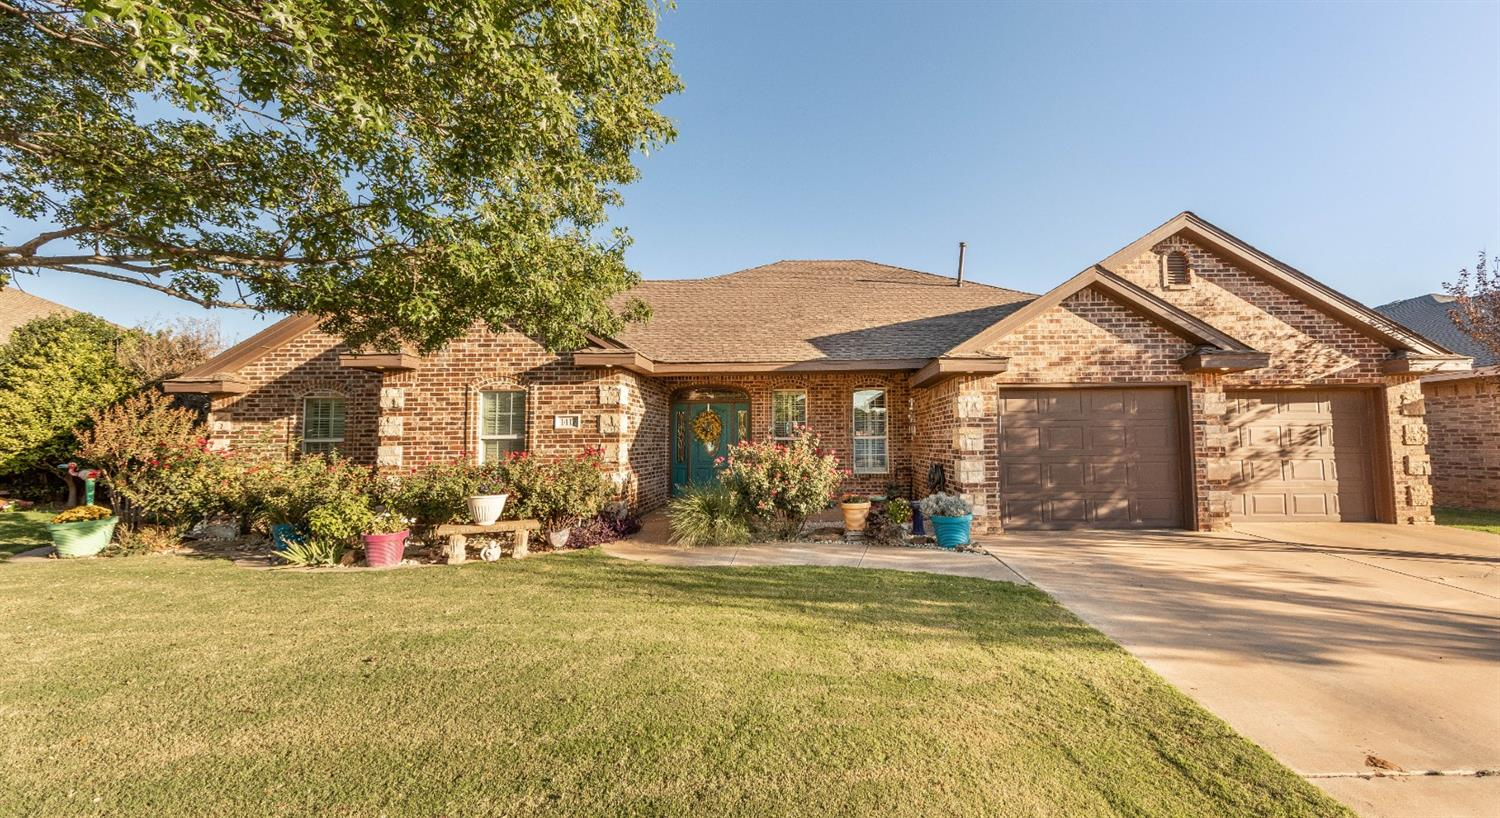 Small town living at its finest! Shallowater offers peaceful living near all that Lubbock has to offer. 4/3.5/2 This one is a classic beauty! Pretty hardwood & tile flooring! The trim/woodworking throughout is outstanding! Mature landscaping, trees and a gracious front porch create beautiful curb appeal. Separate dining room! A huge kitchen opens to a dining area and a large living room with very nice built ins that flank the fireplace. The basement is the perfect movie room/workout room/playroom....The large master suite is isolated creating a private retreat. Out back you'll find a gorgeous covered patio/pergola, a dog run, a newer fence, and lush grass.  Don't miss the separate apartment out back that could work as a mother-in-law suite, a man cave, craft/sewing room, office, etc... lots of possibilities! Apartment has a FULL kitchen/bedroom/bathroom/laundry room.